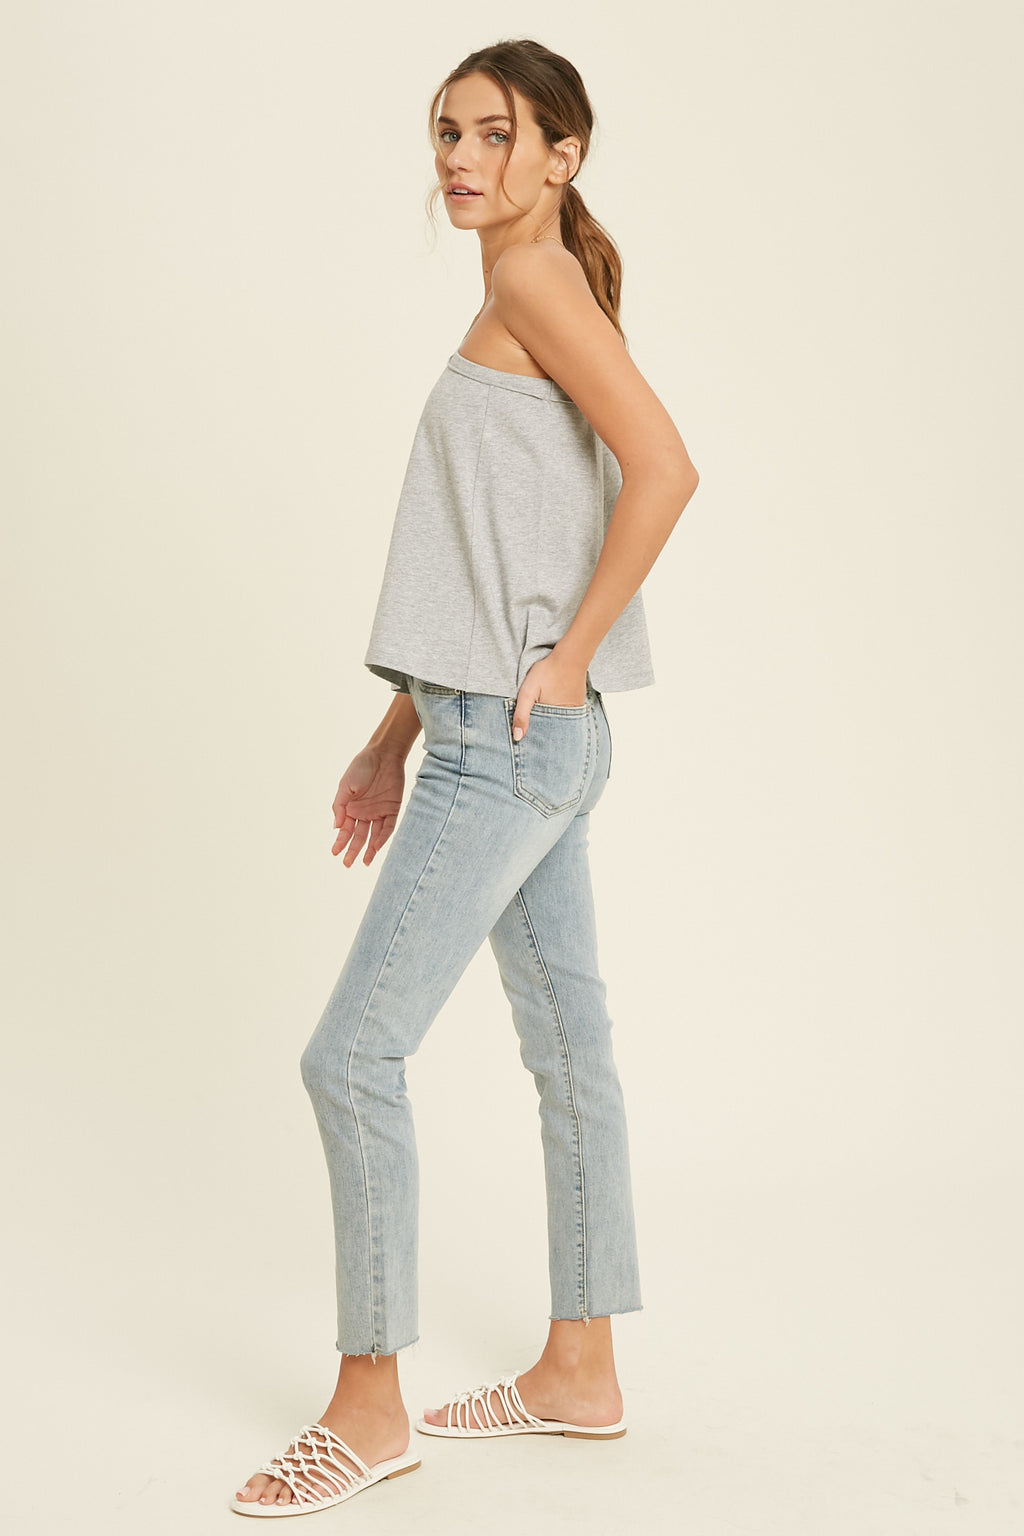 Brooke One Shoulder Tee